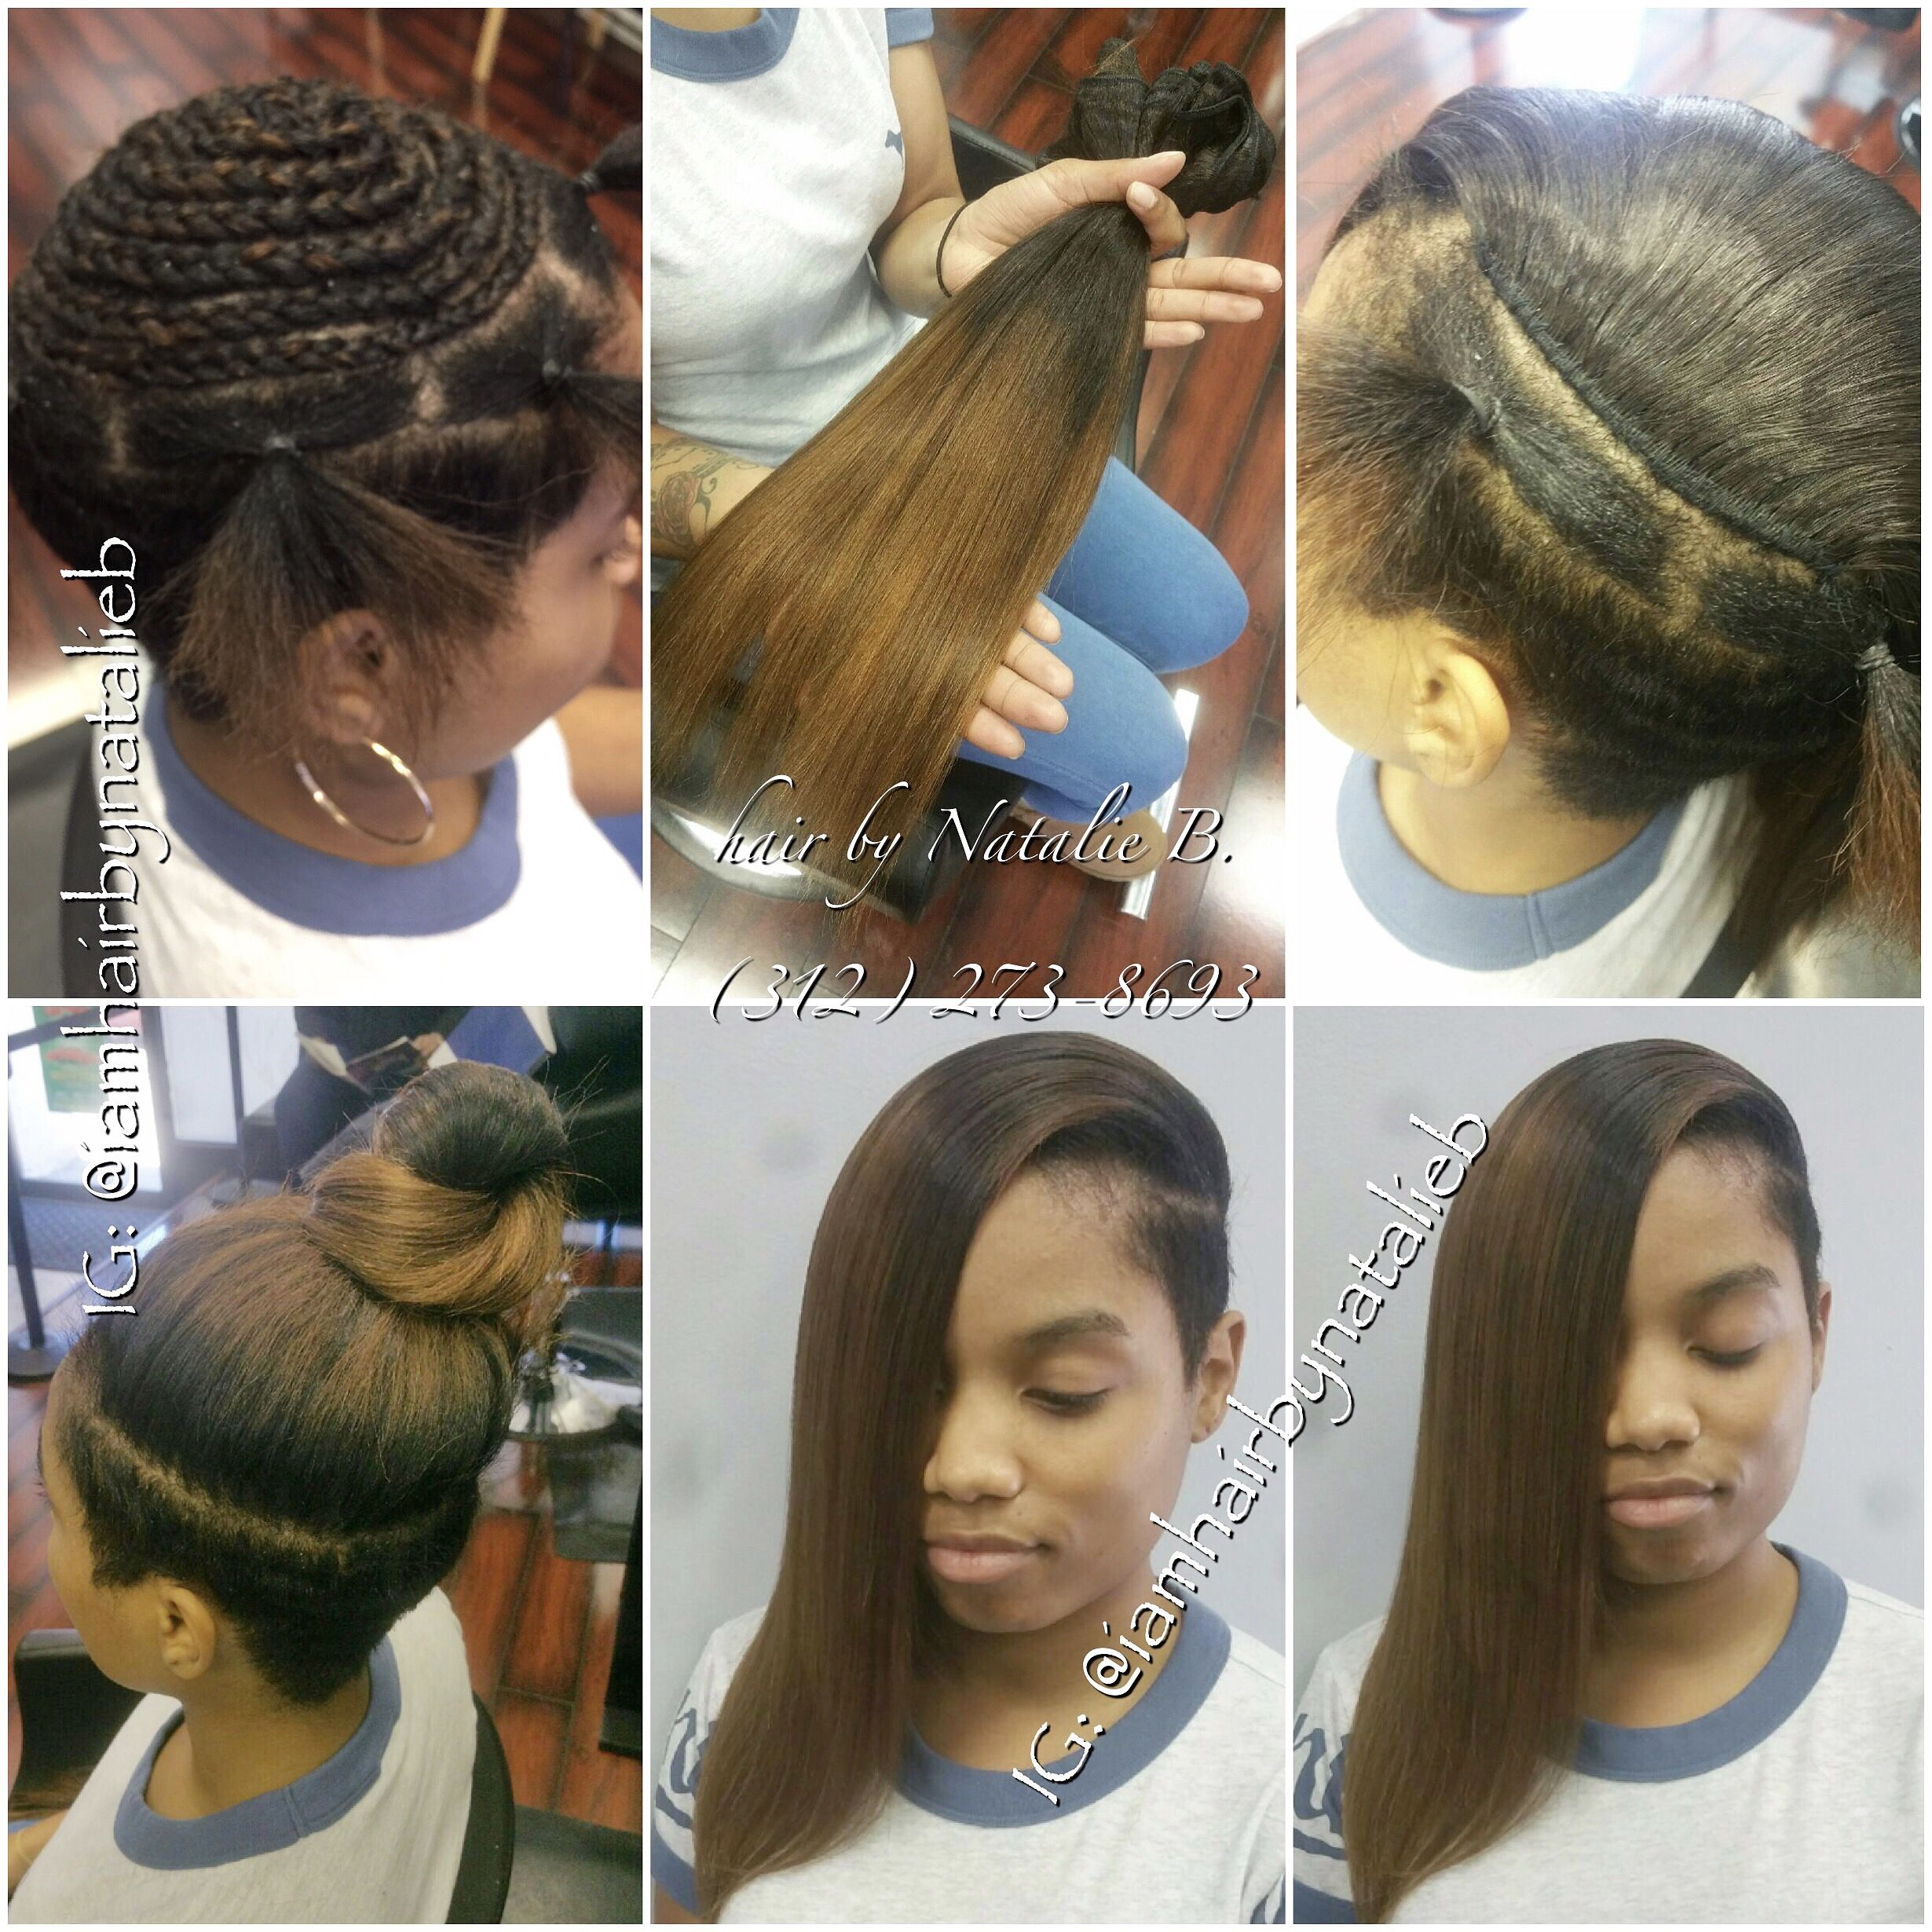 Natural-Looking, Versatile Sew-In Hair Weave On Client